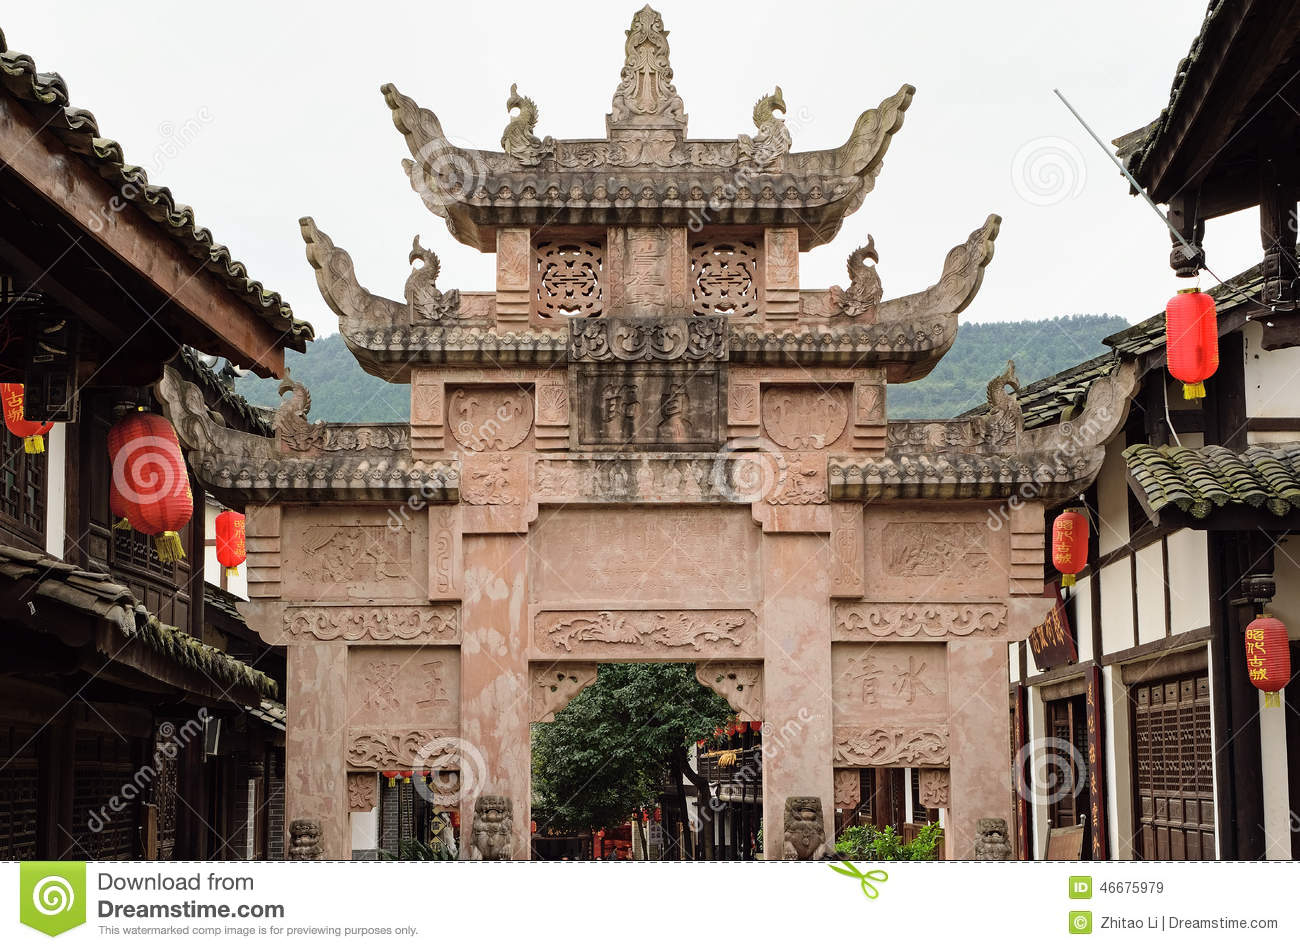 Guangyuan China  city photos : Guangyuan China Chastity Memorial Arch Editorial Stock Image Image ...